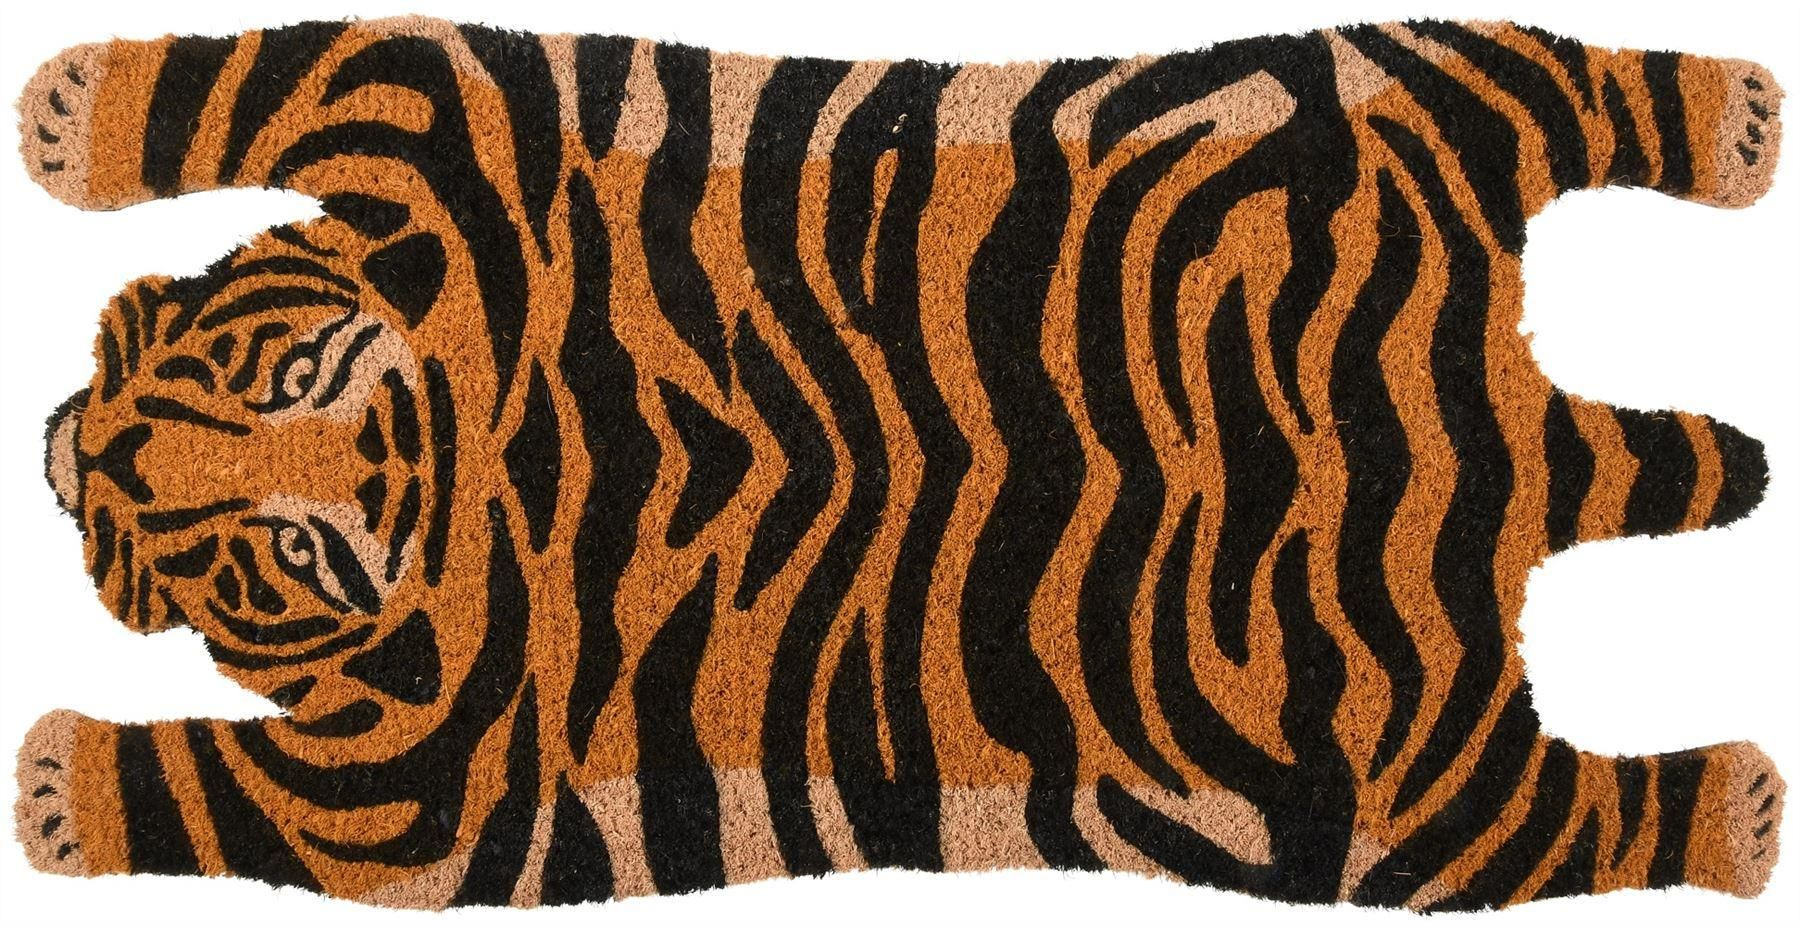 Doormat shaped like a tiger